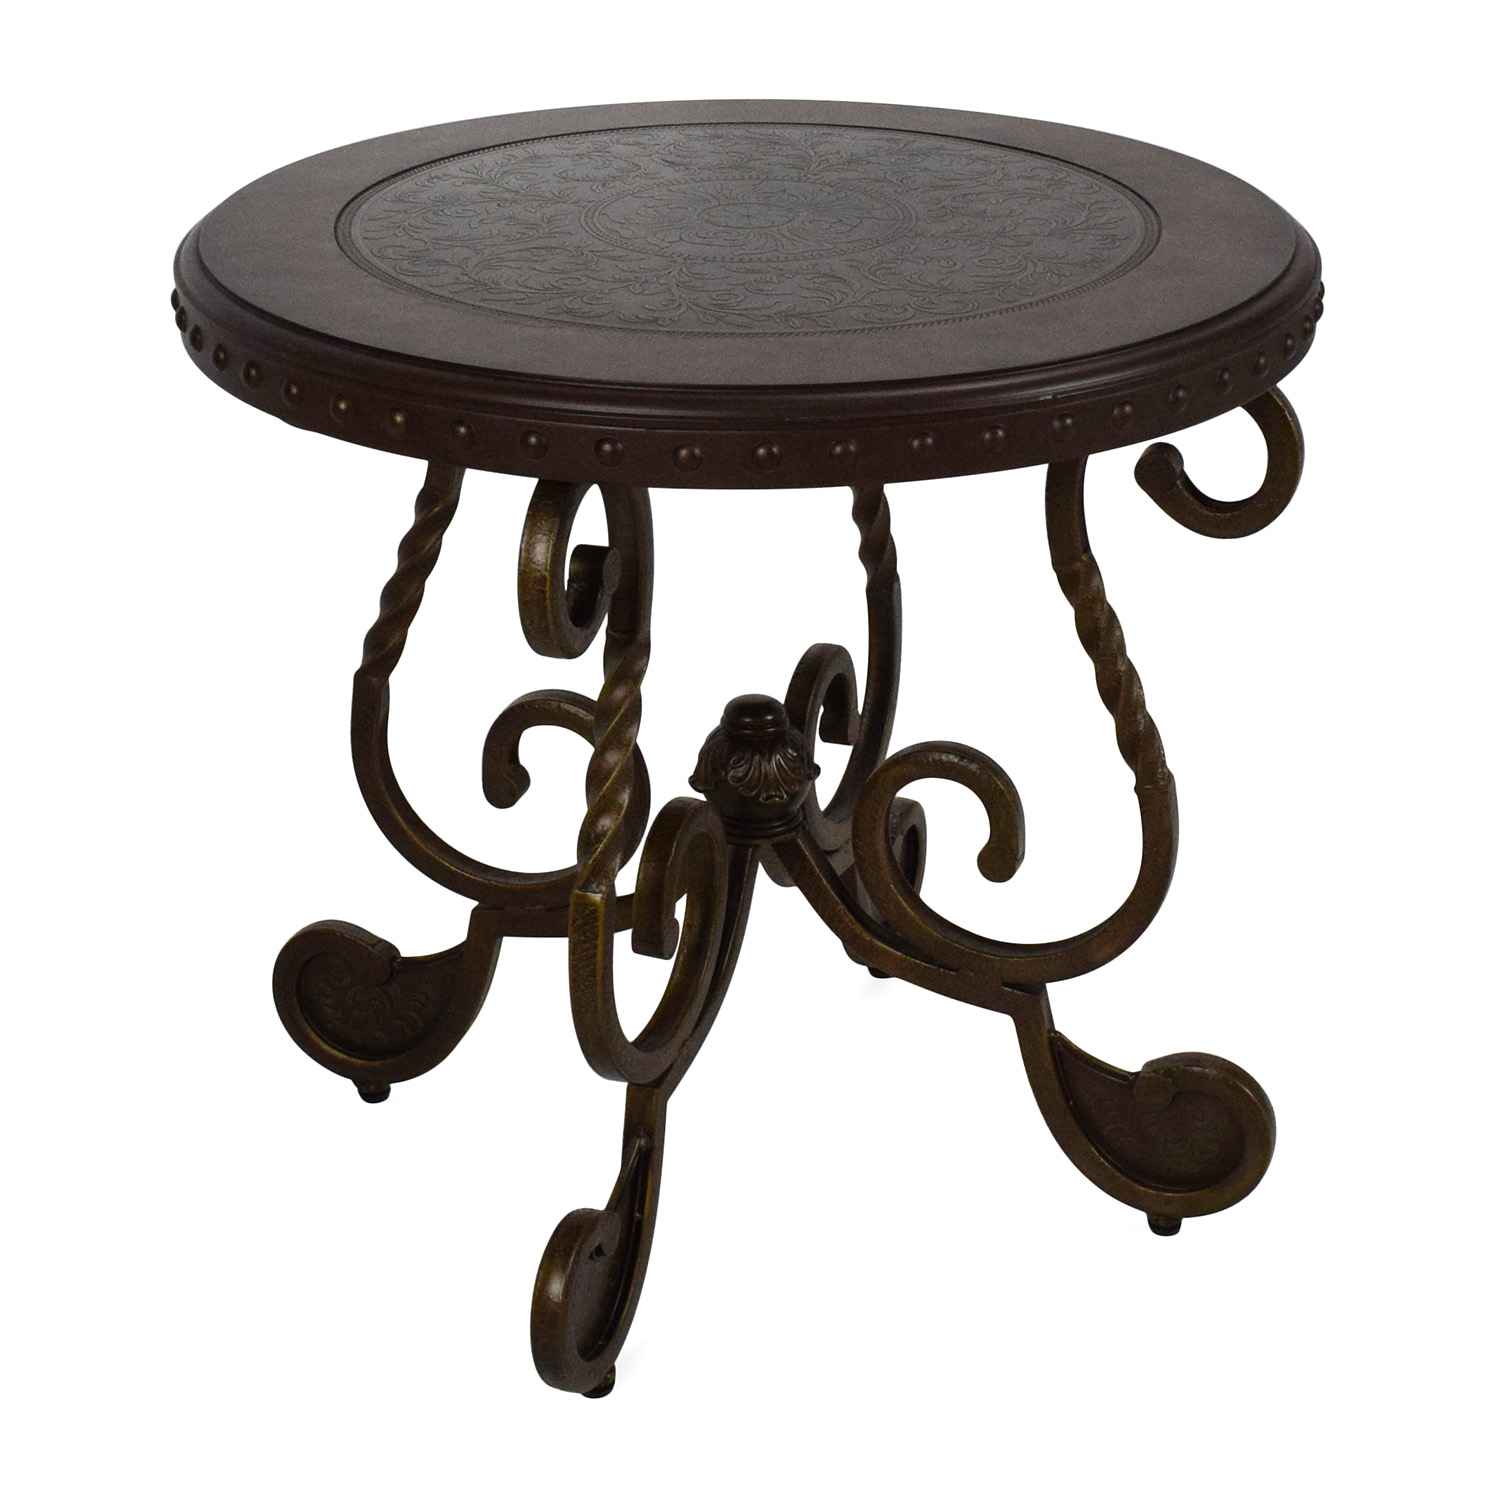 off ashley furniture rafferty round end table tables second hand liberty treasures porter dining distressed with drawers factory indoor dog crate ideas wesling coffee tall black